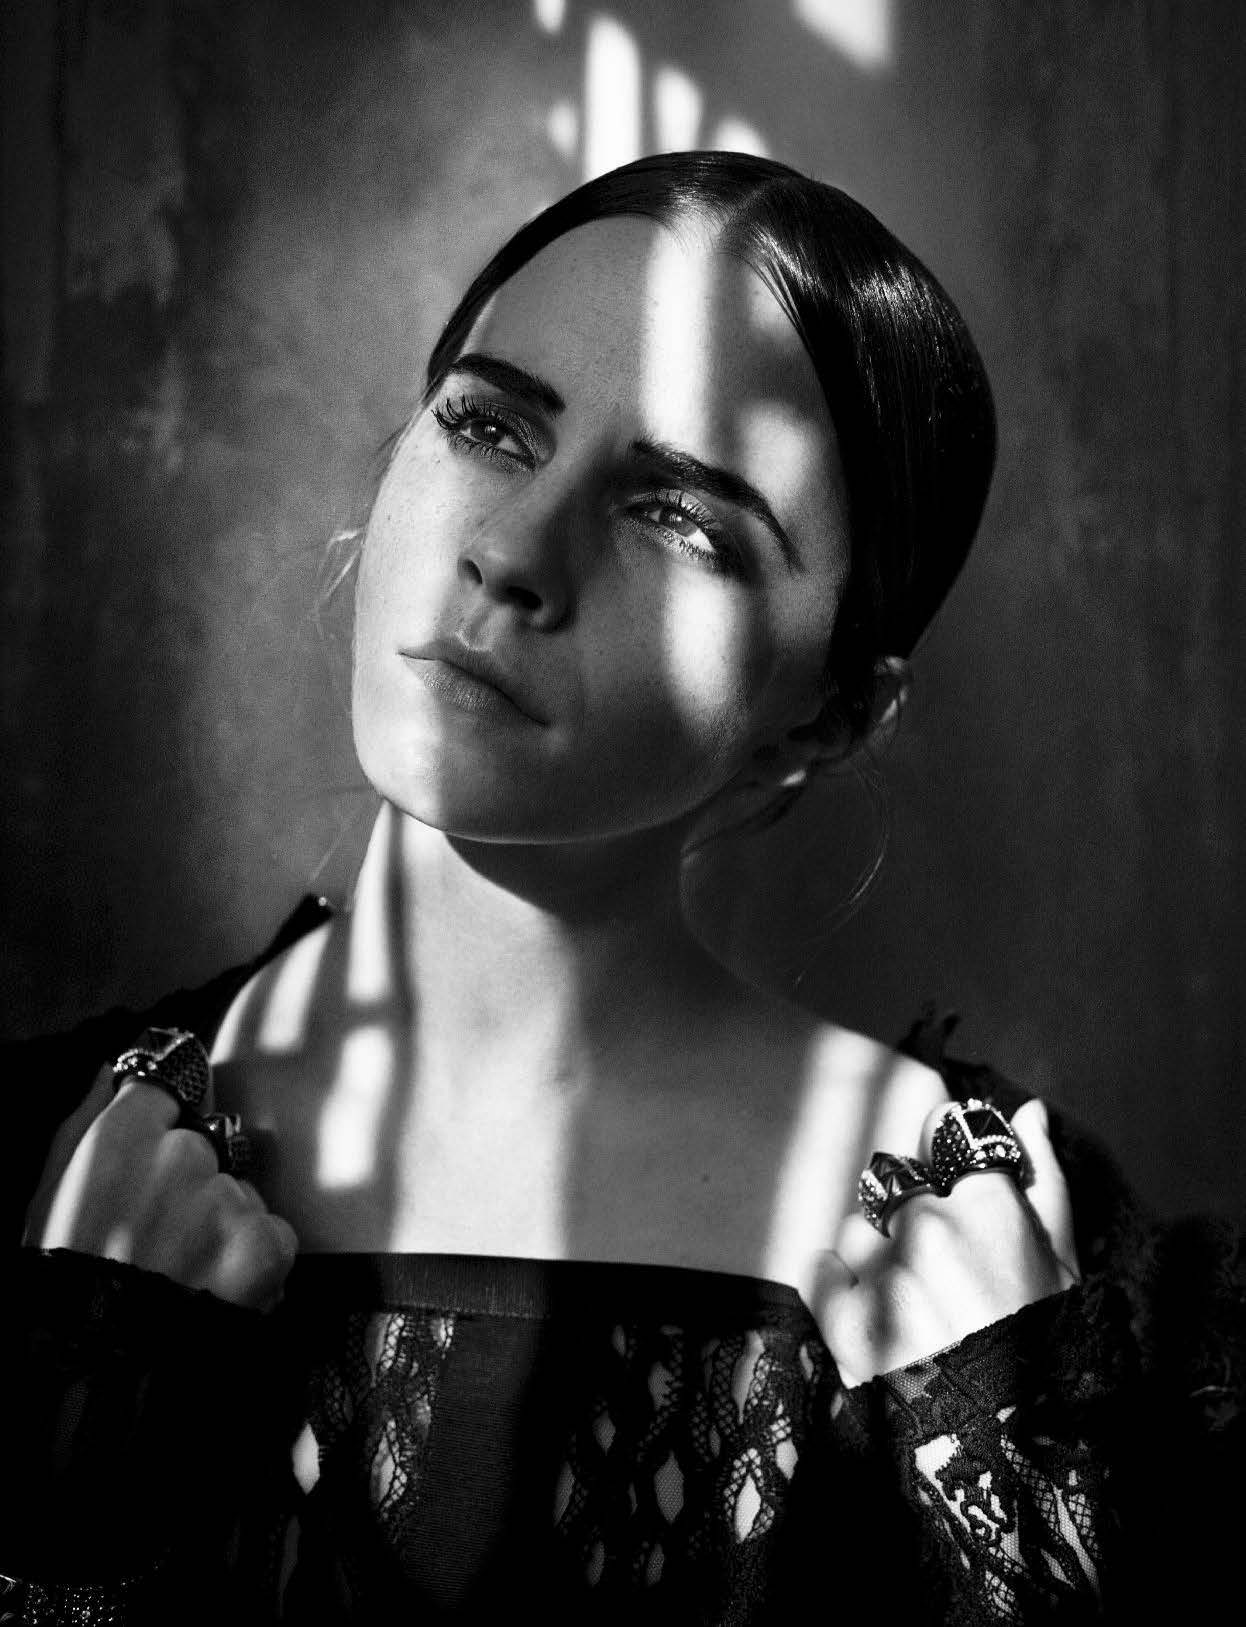 emma-watson-by-vincent-peters-for-vogue-italia-november-2015-3